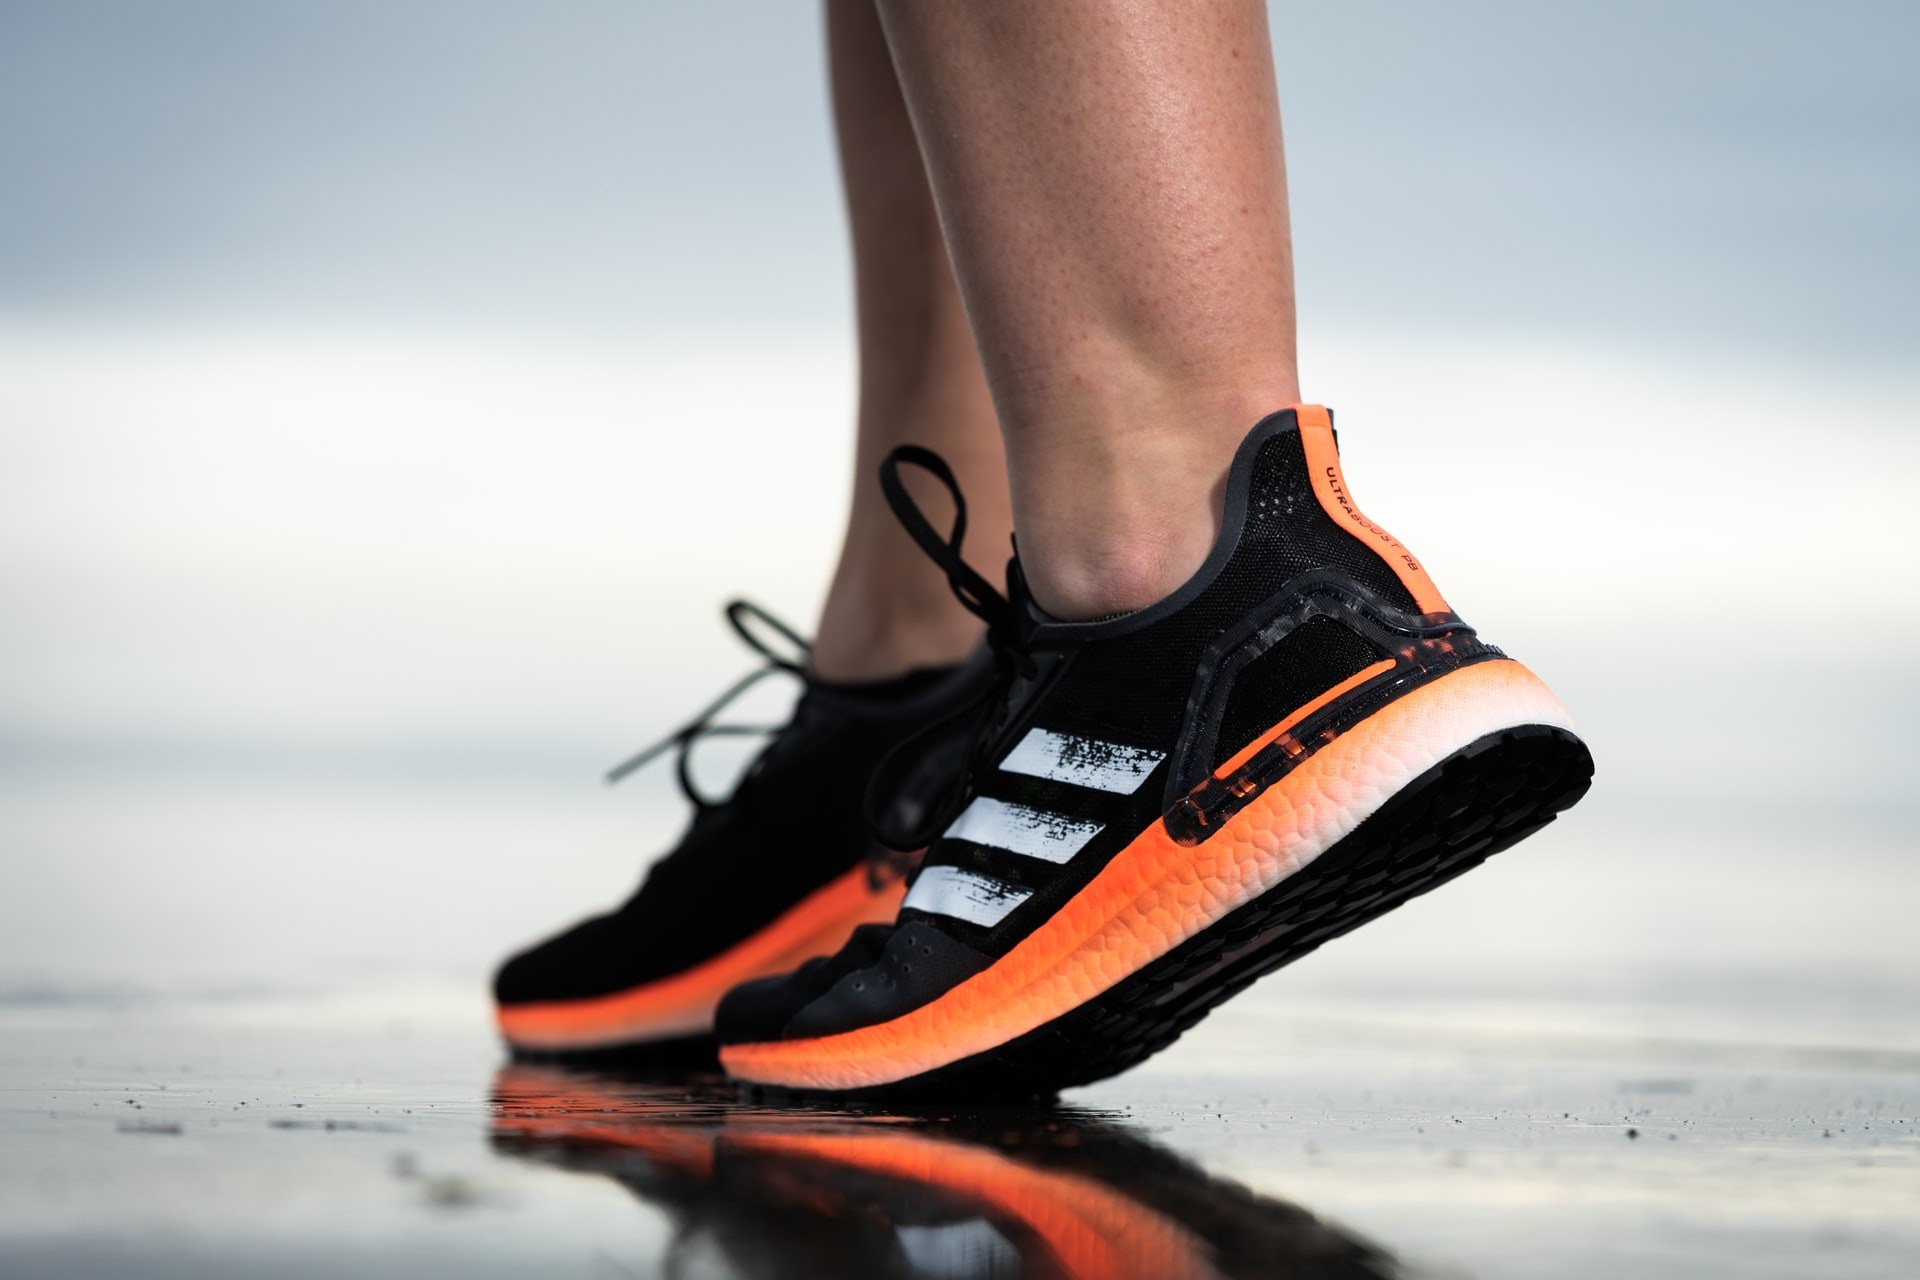 gait analysis for runners - feet in trainers